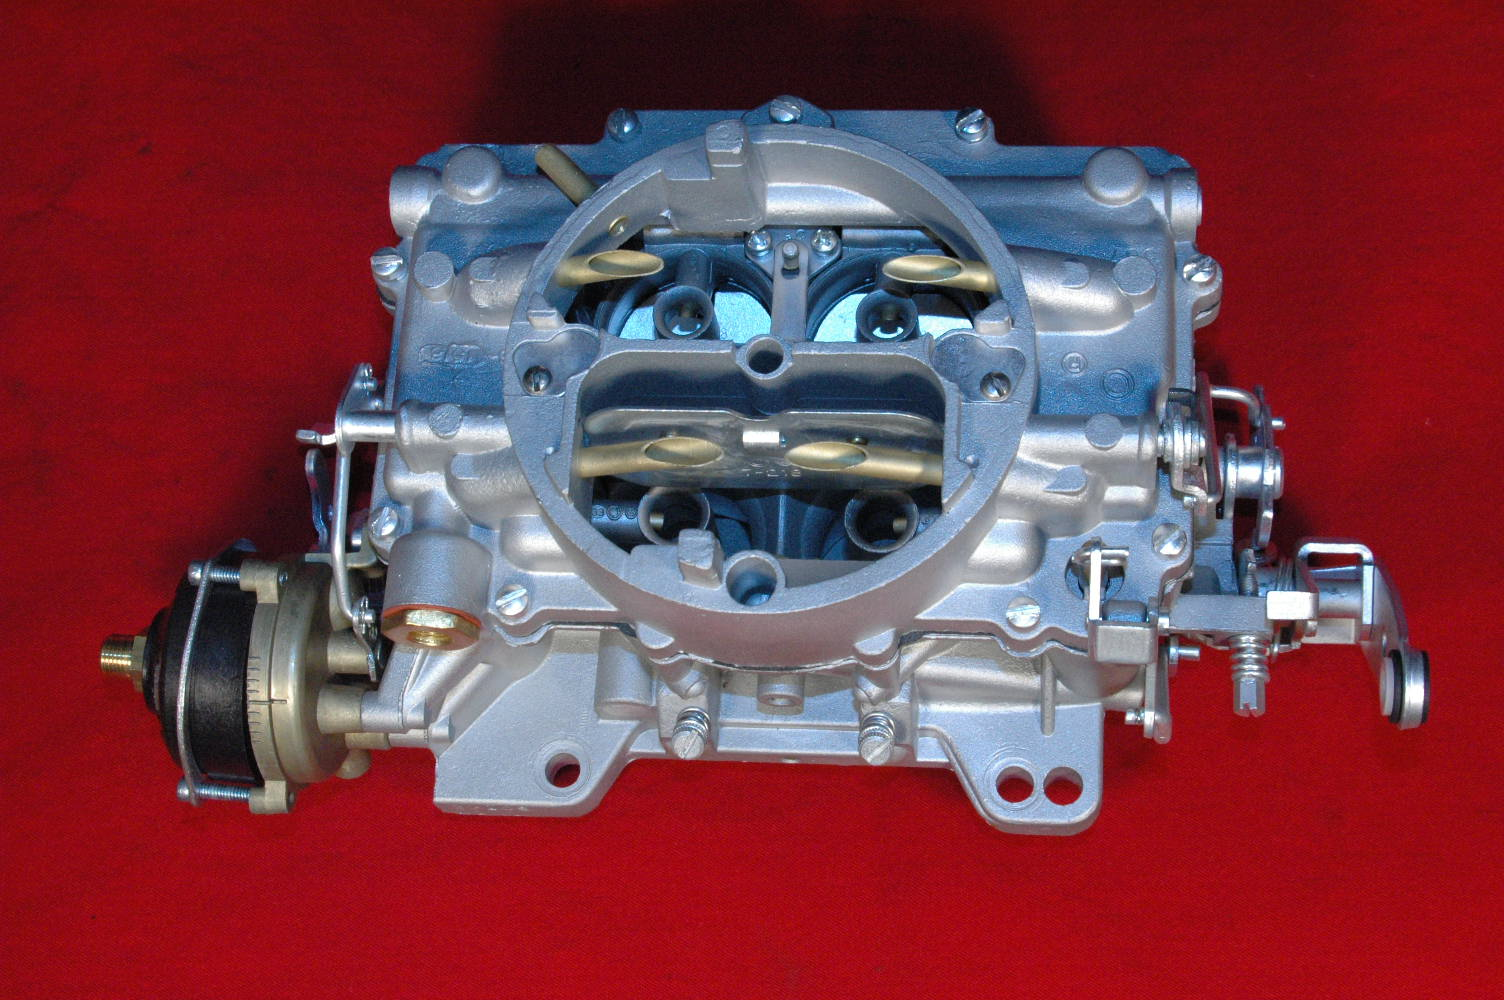 Image for item A1520 - CARBURETOR - AFB # 3310S 300hp, automatic trans - RESTORED